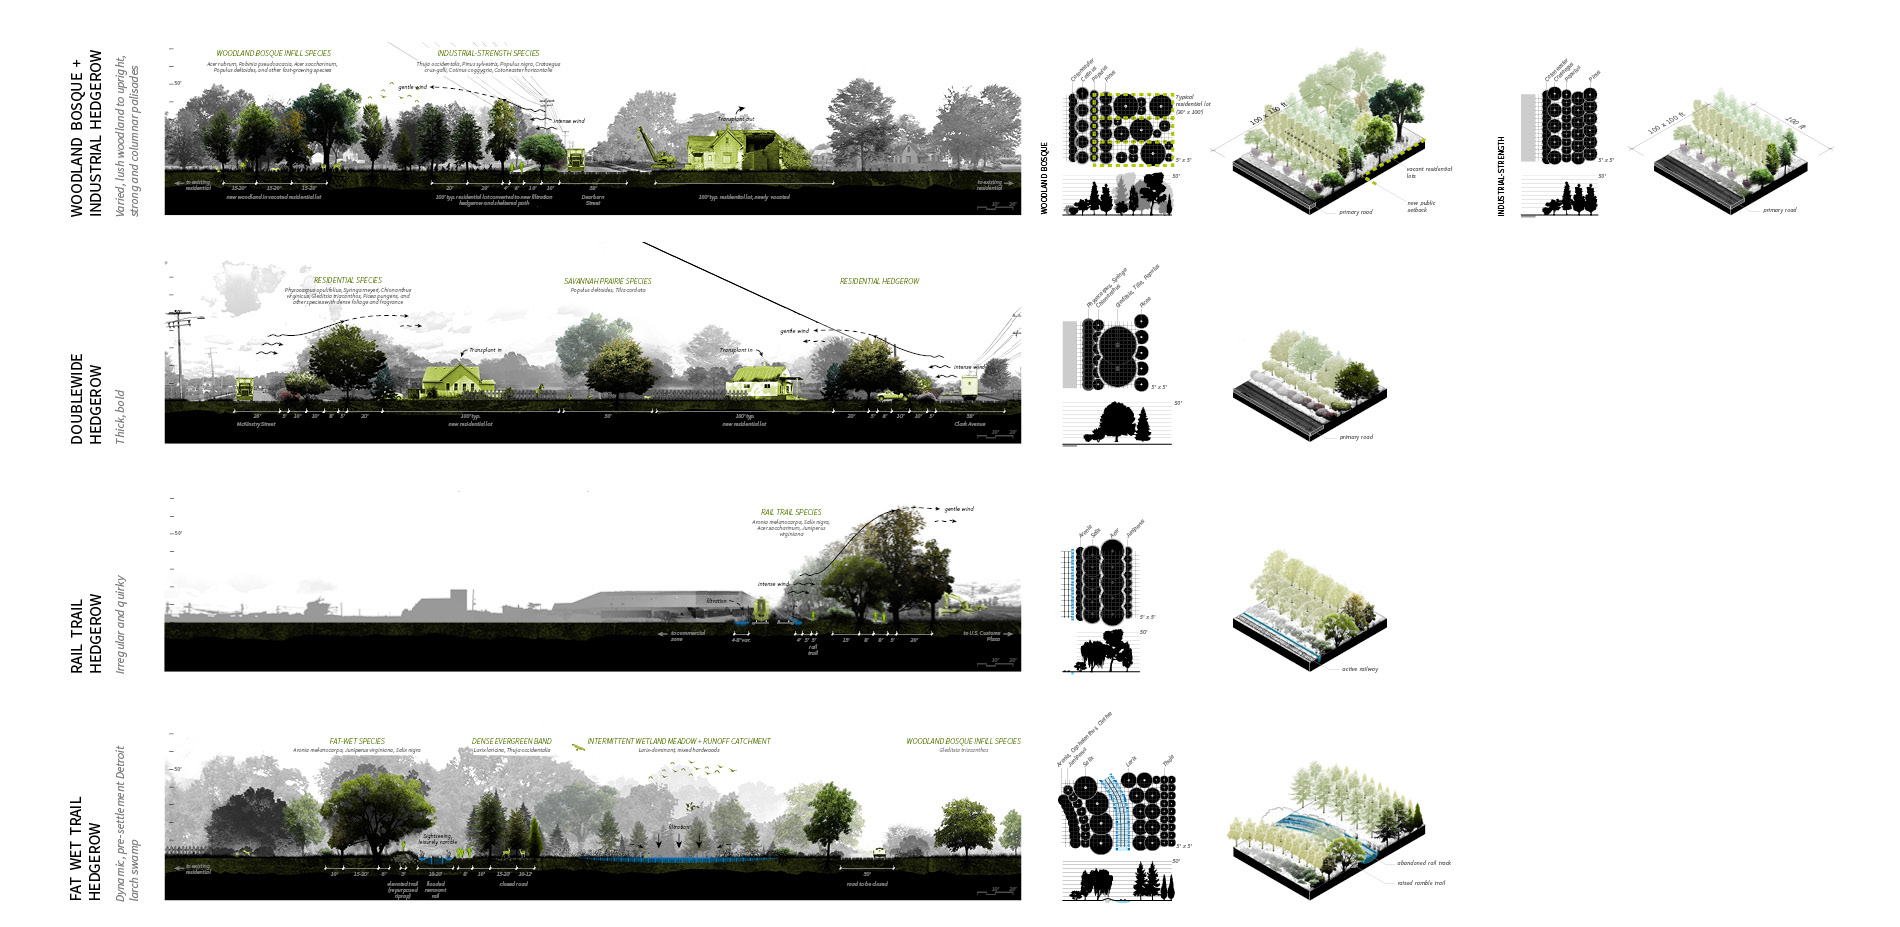 Landscape typologies of new green infrastructure